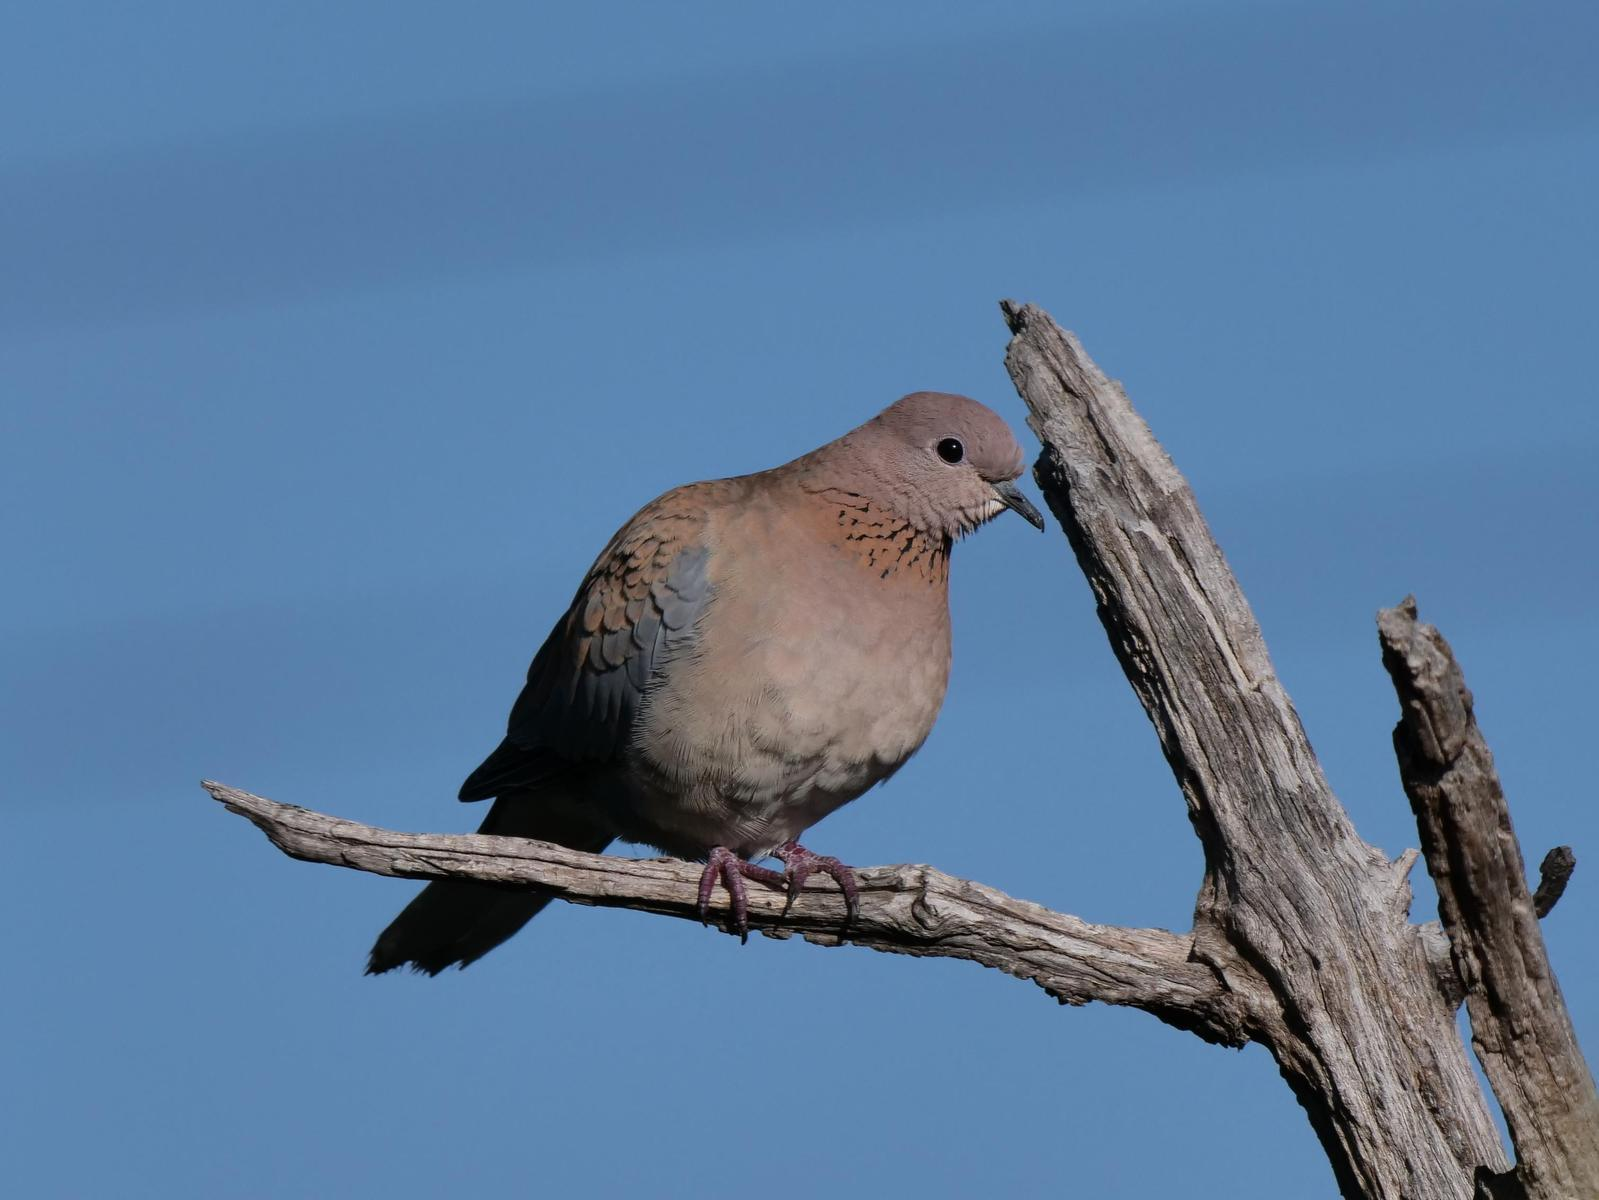 Laughing Dove Photo by Peter Lowe